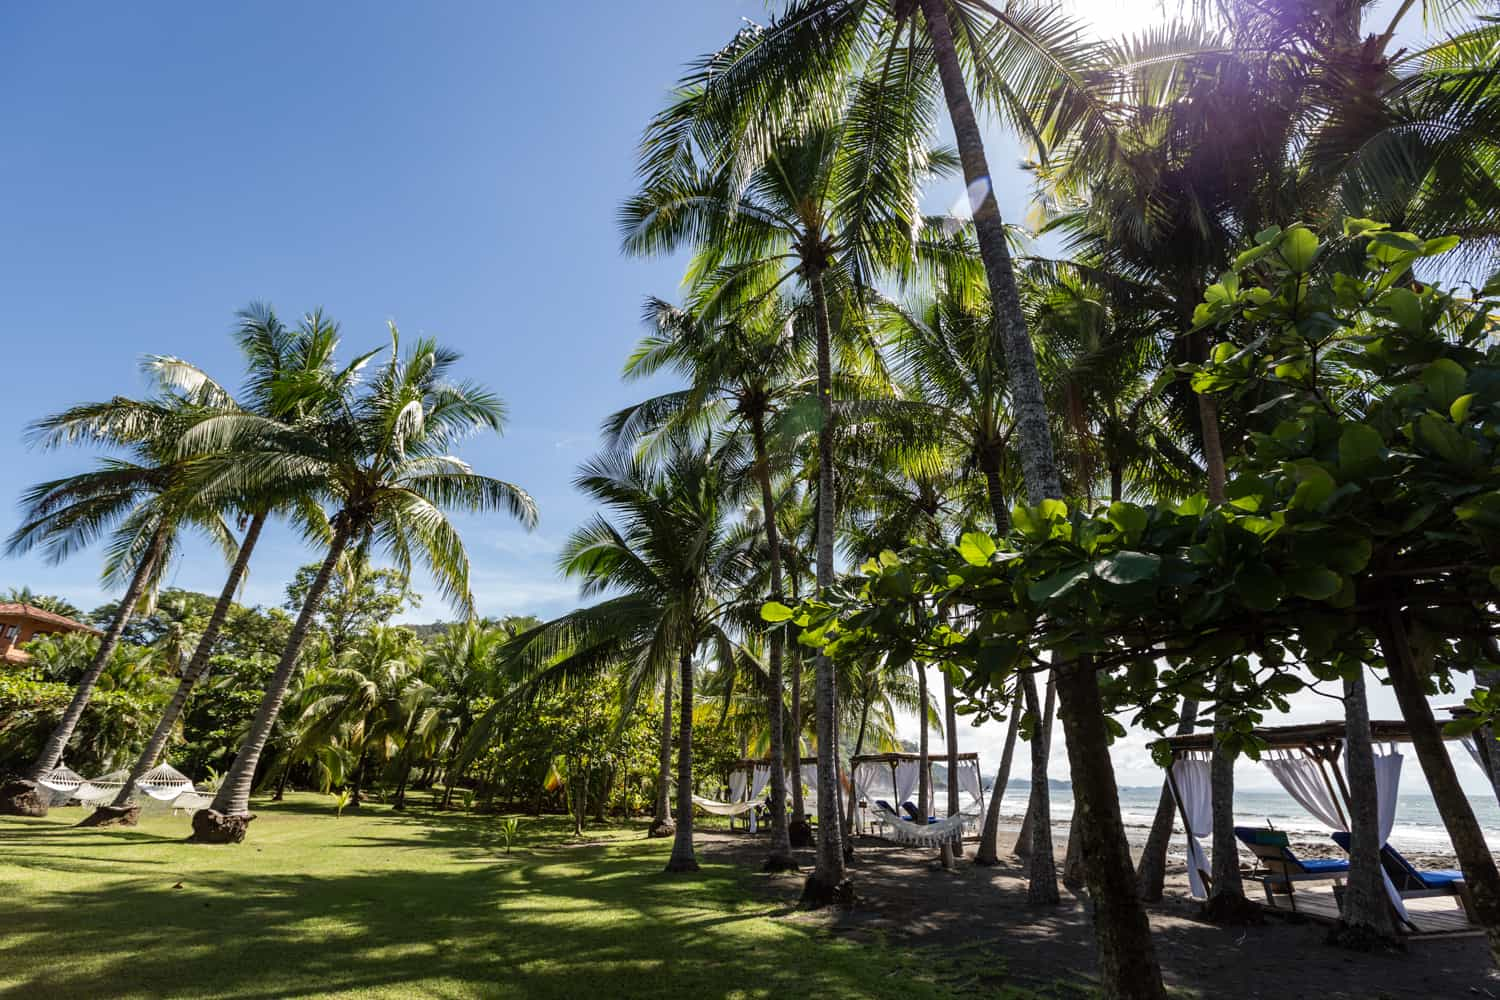 Palm trees line border between lawn and beach venues for wedding events.